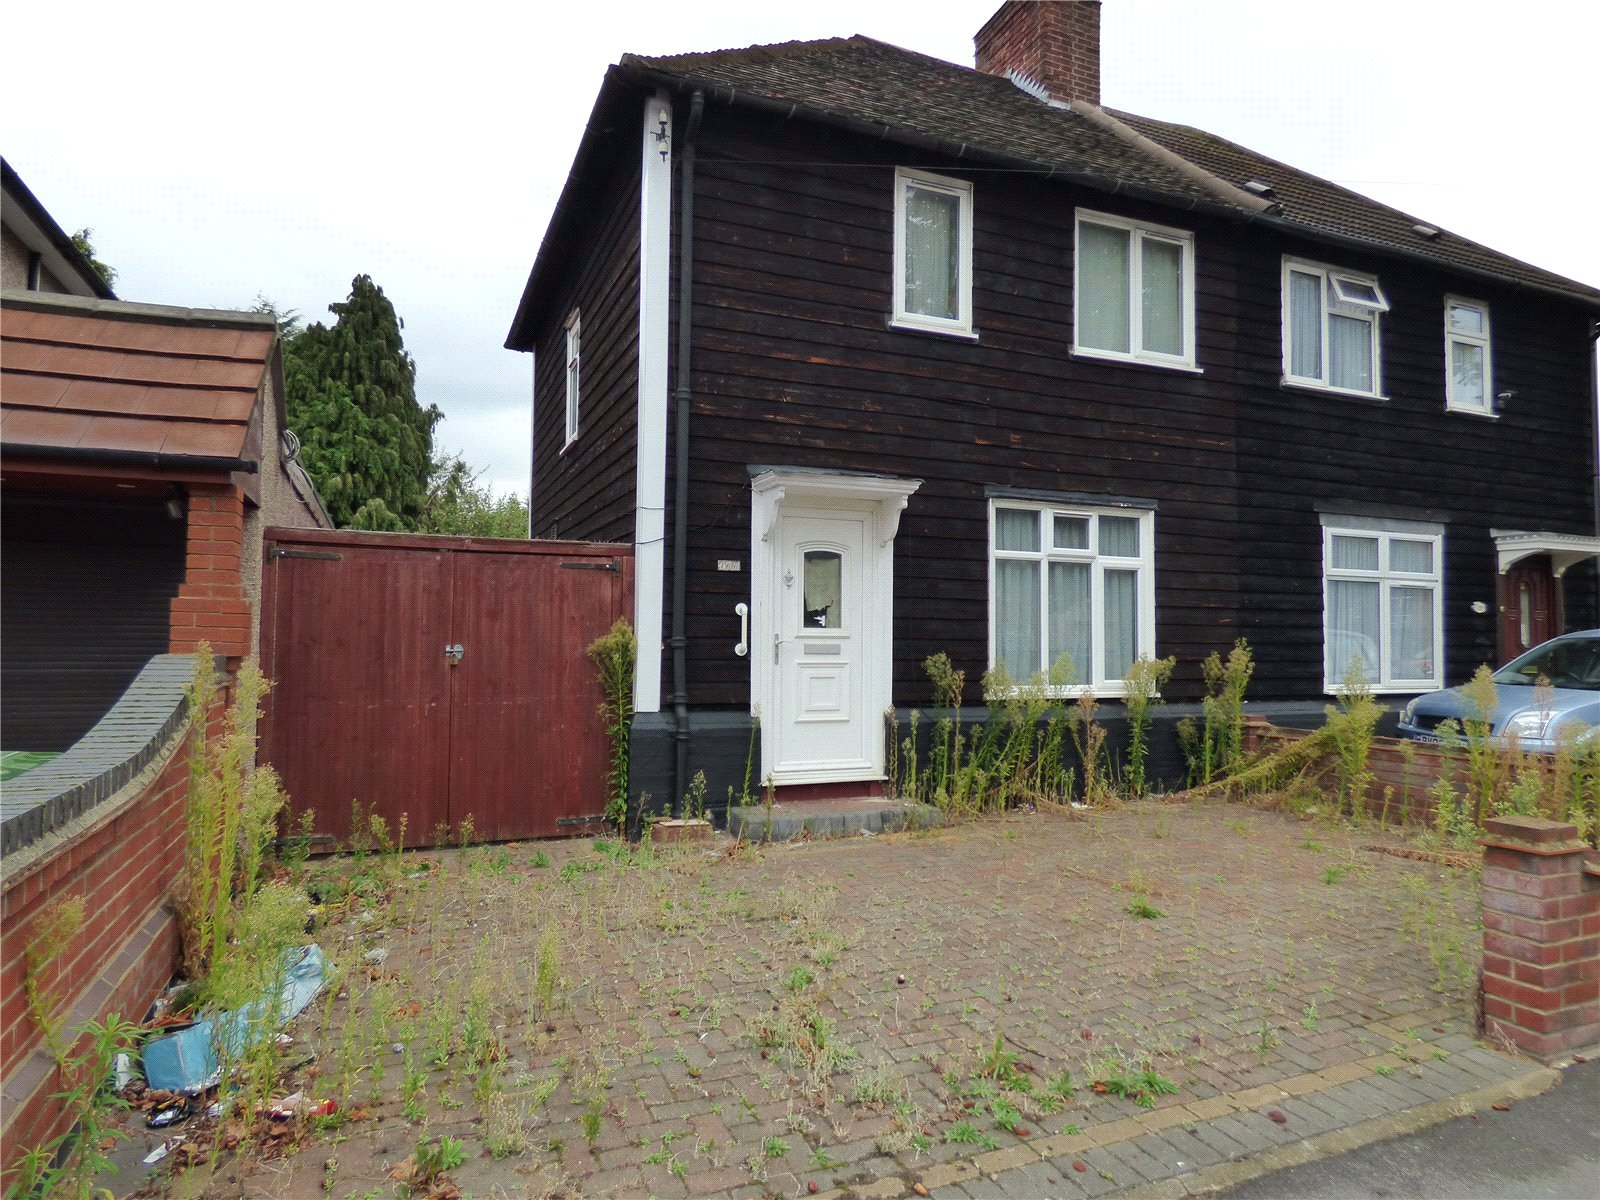 3 Bedrooms Semi Detached House for sale in Becontree Avenue Dagenham Essex RM8